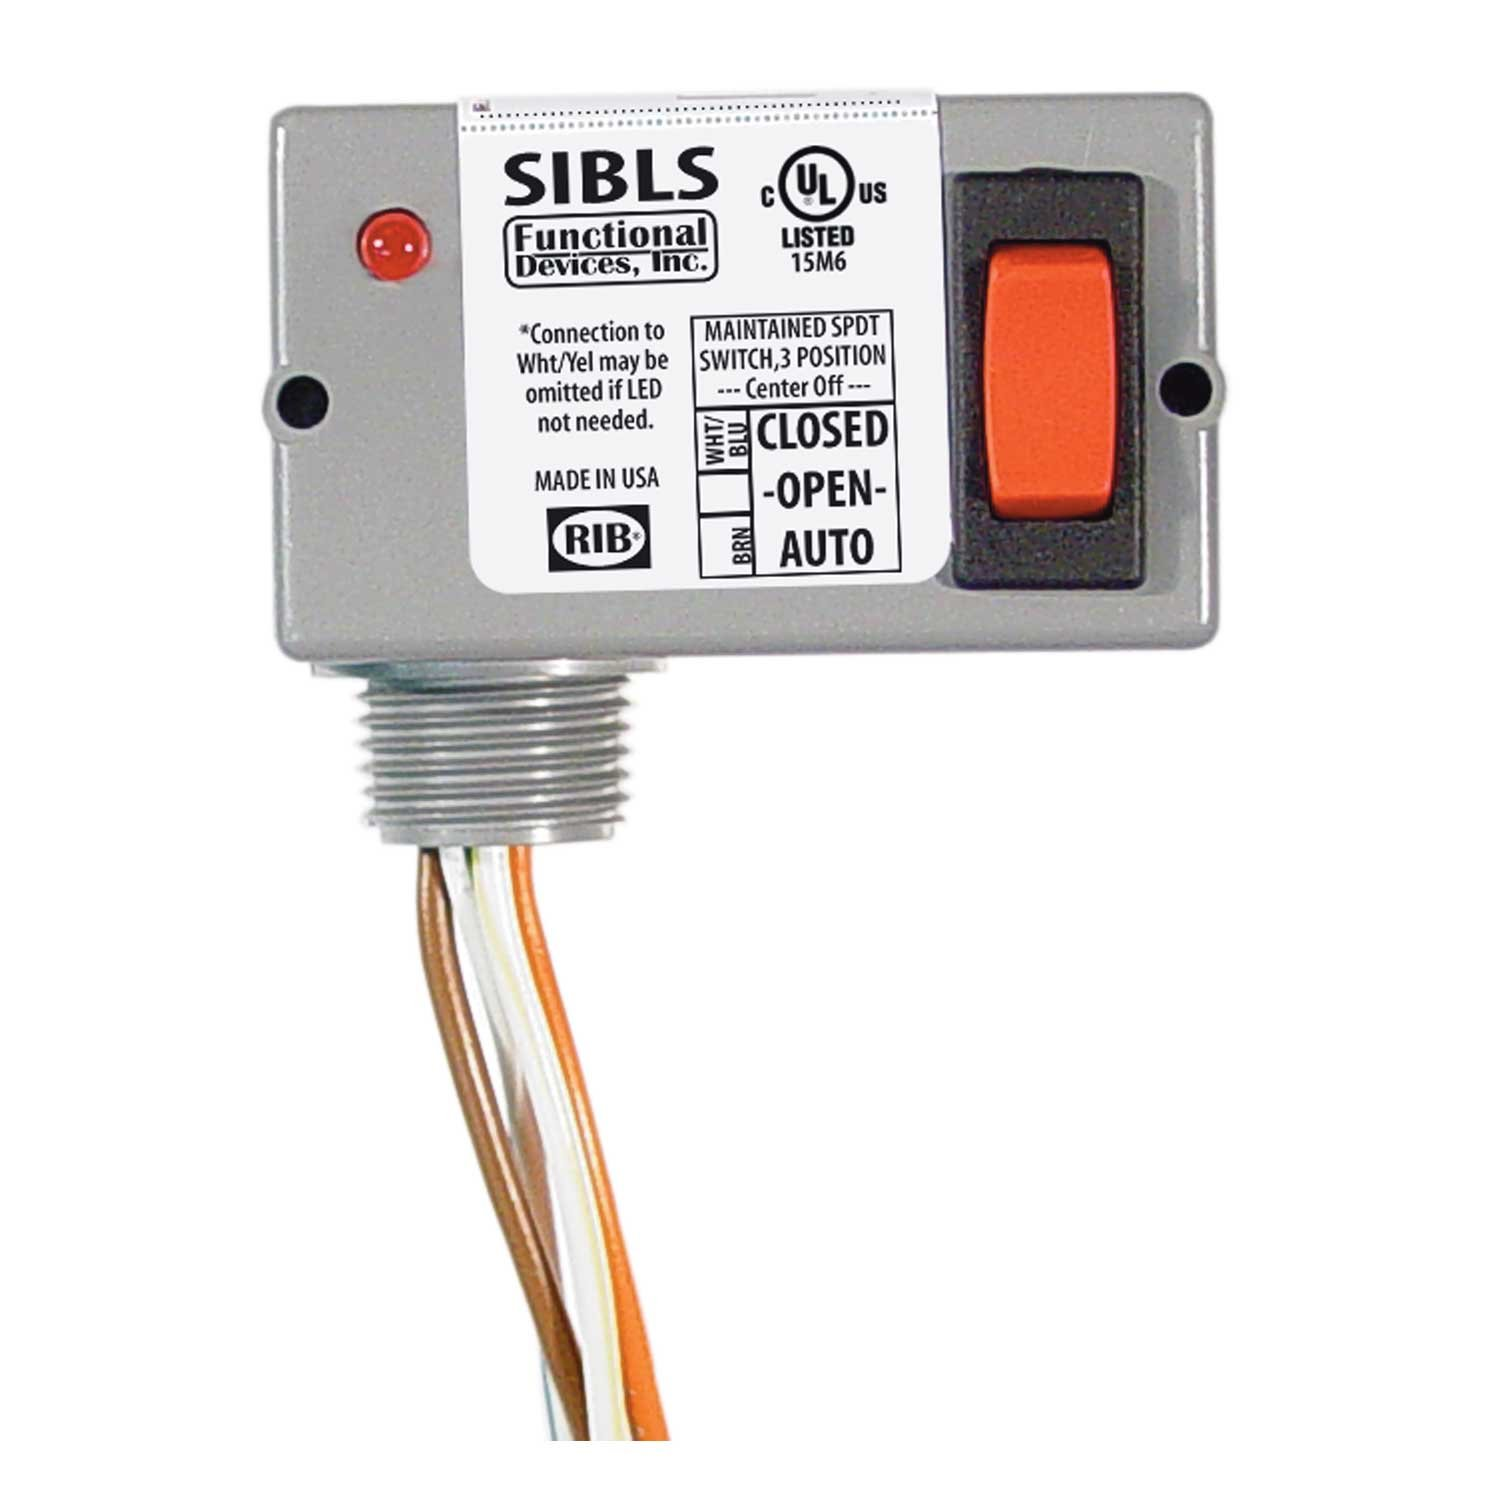 Functional Devices SIBLS Switch, 5 Amp, 30 Vac/dc, 3 Position Maintained, On/Off/On, LED Indicator, NEMA 1 Housing